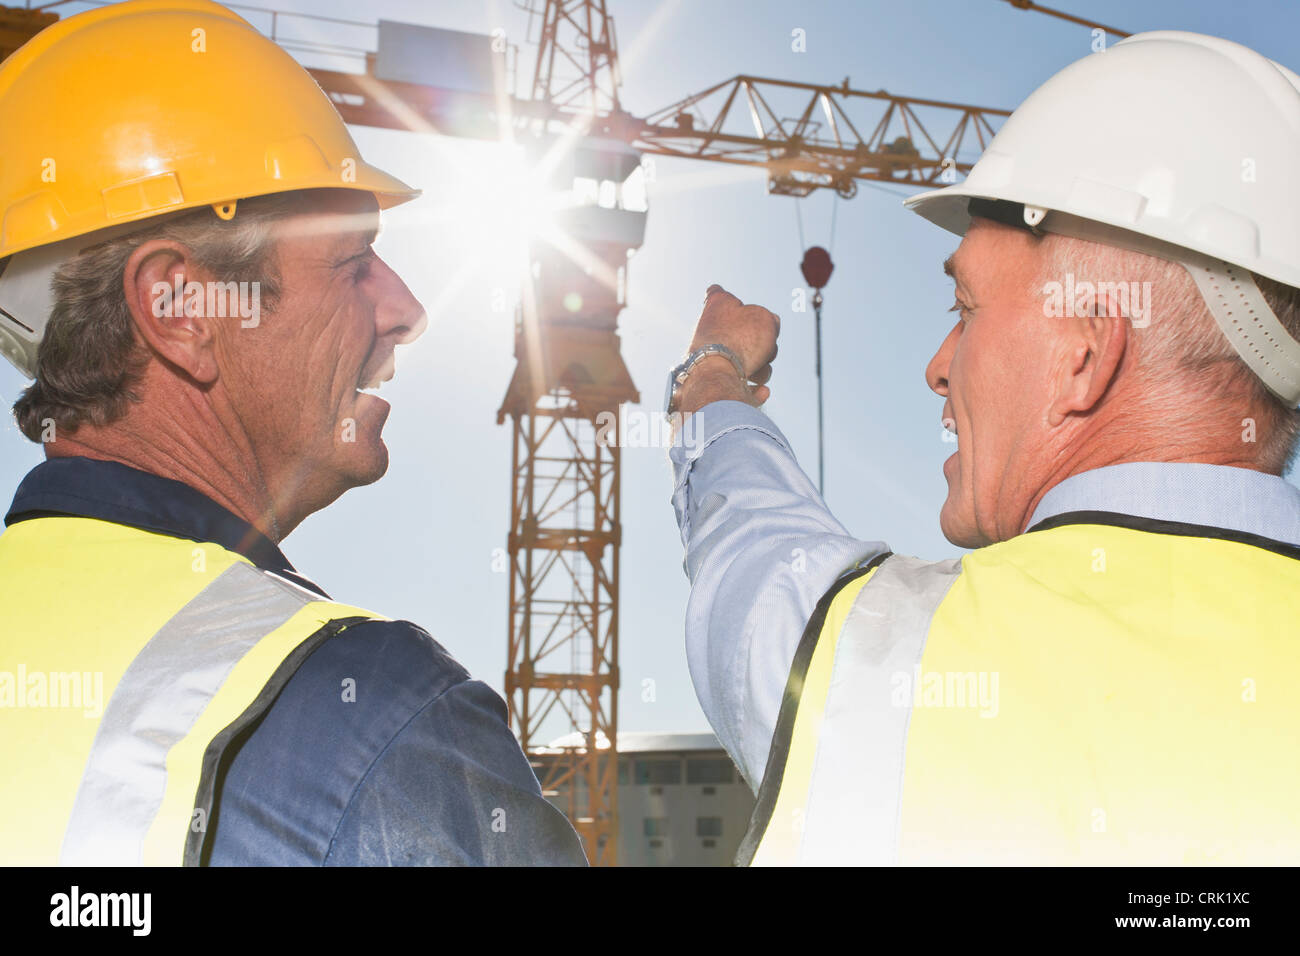 Workers talking on construction site - Stock Image